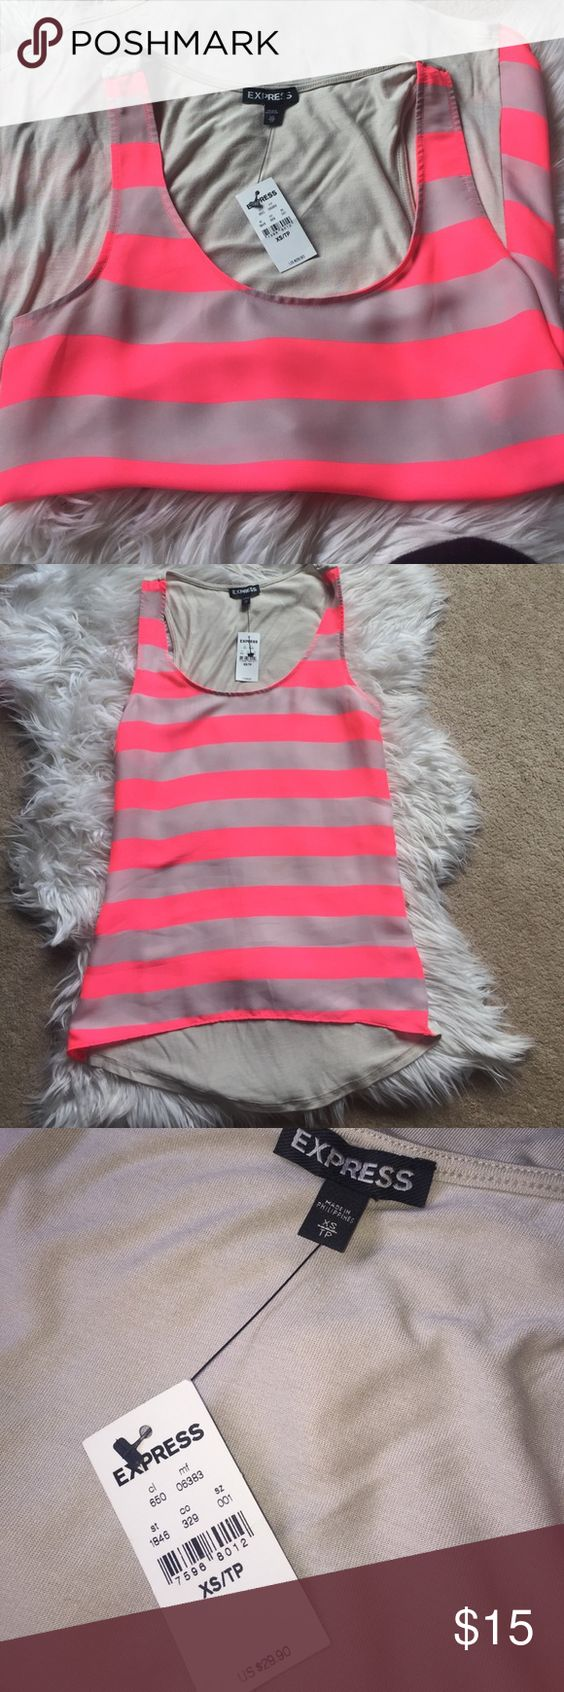 Express Neon/Beige Cami -NWT! 😄 XS - New with tags! Perfect for summer! Express Tops Camisoles